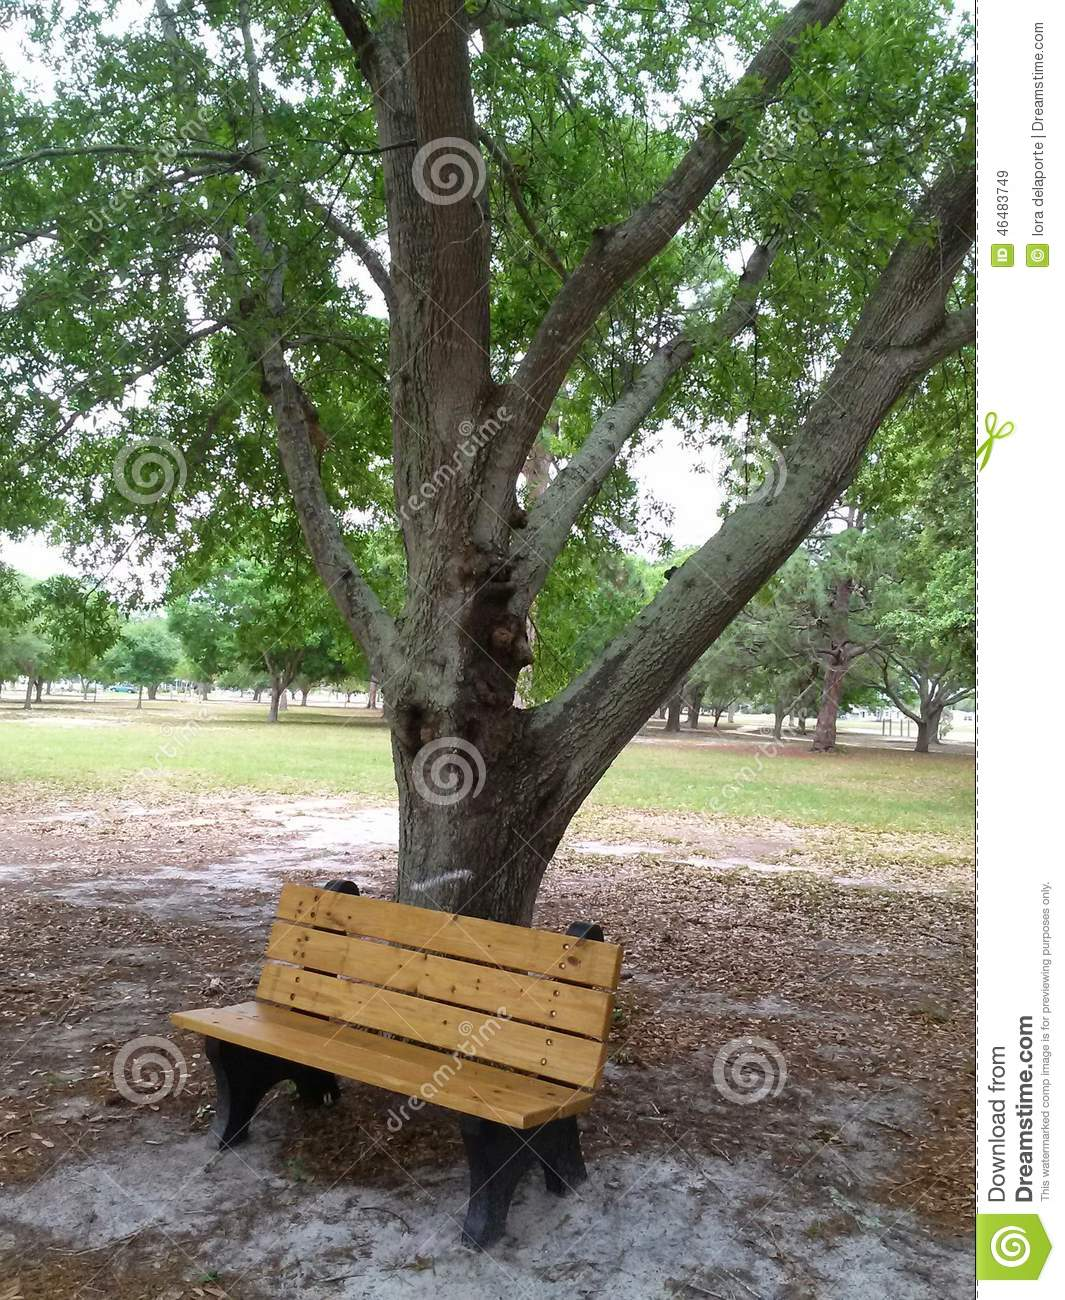 Let 39 s go enjoy the greenery stock photo image 46483749 for Benches that go around trees